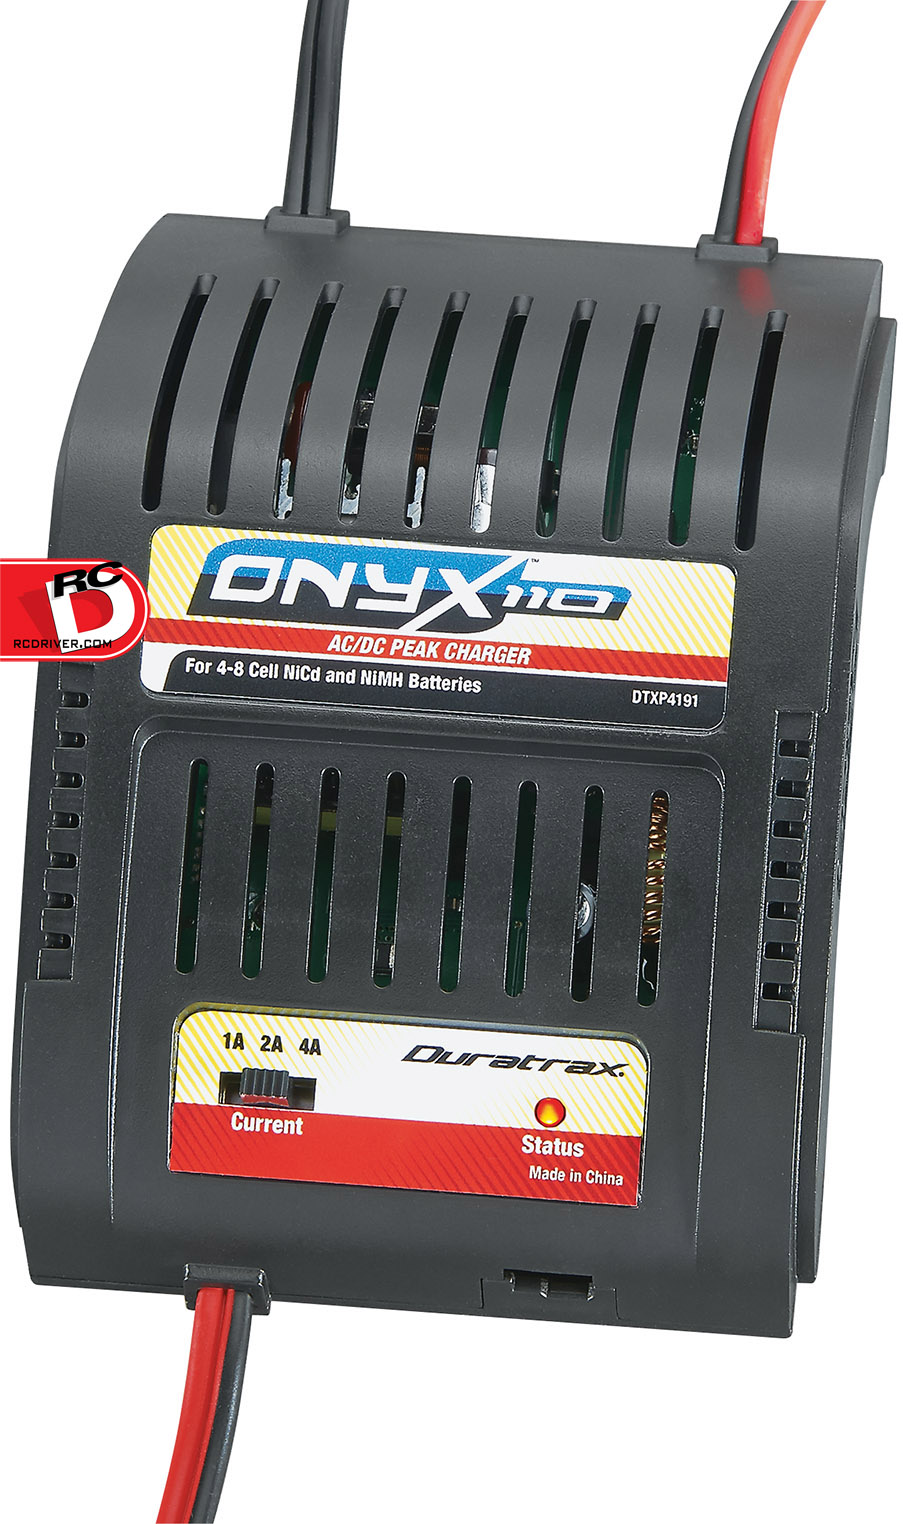 Duratrax Onyx 110 AC/DC NiMH Charger